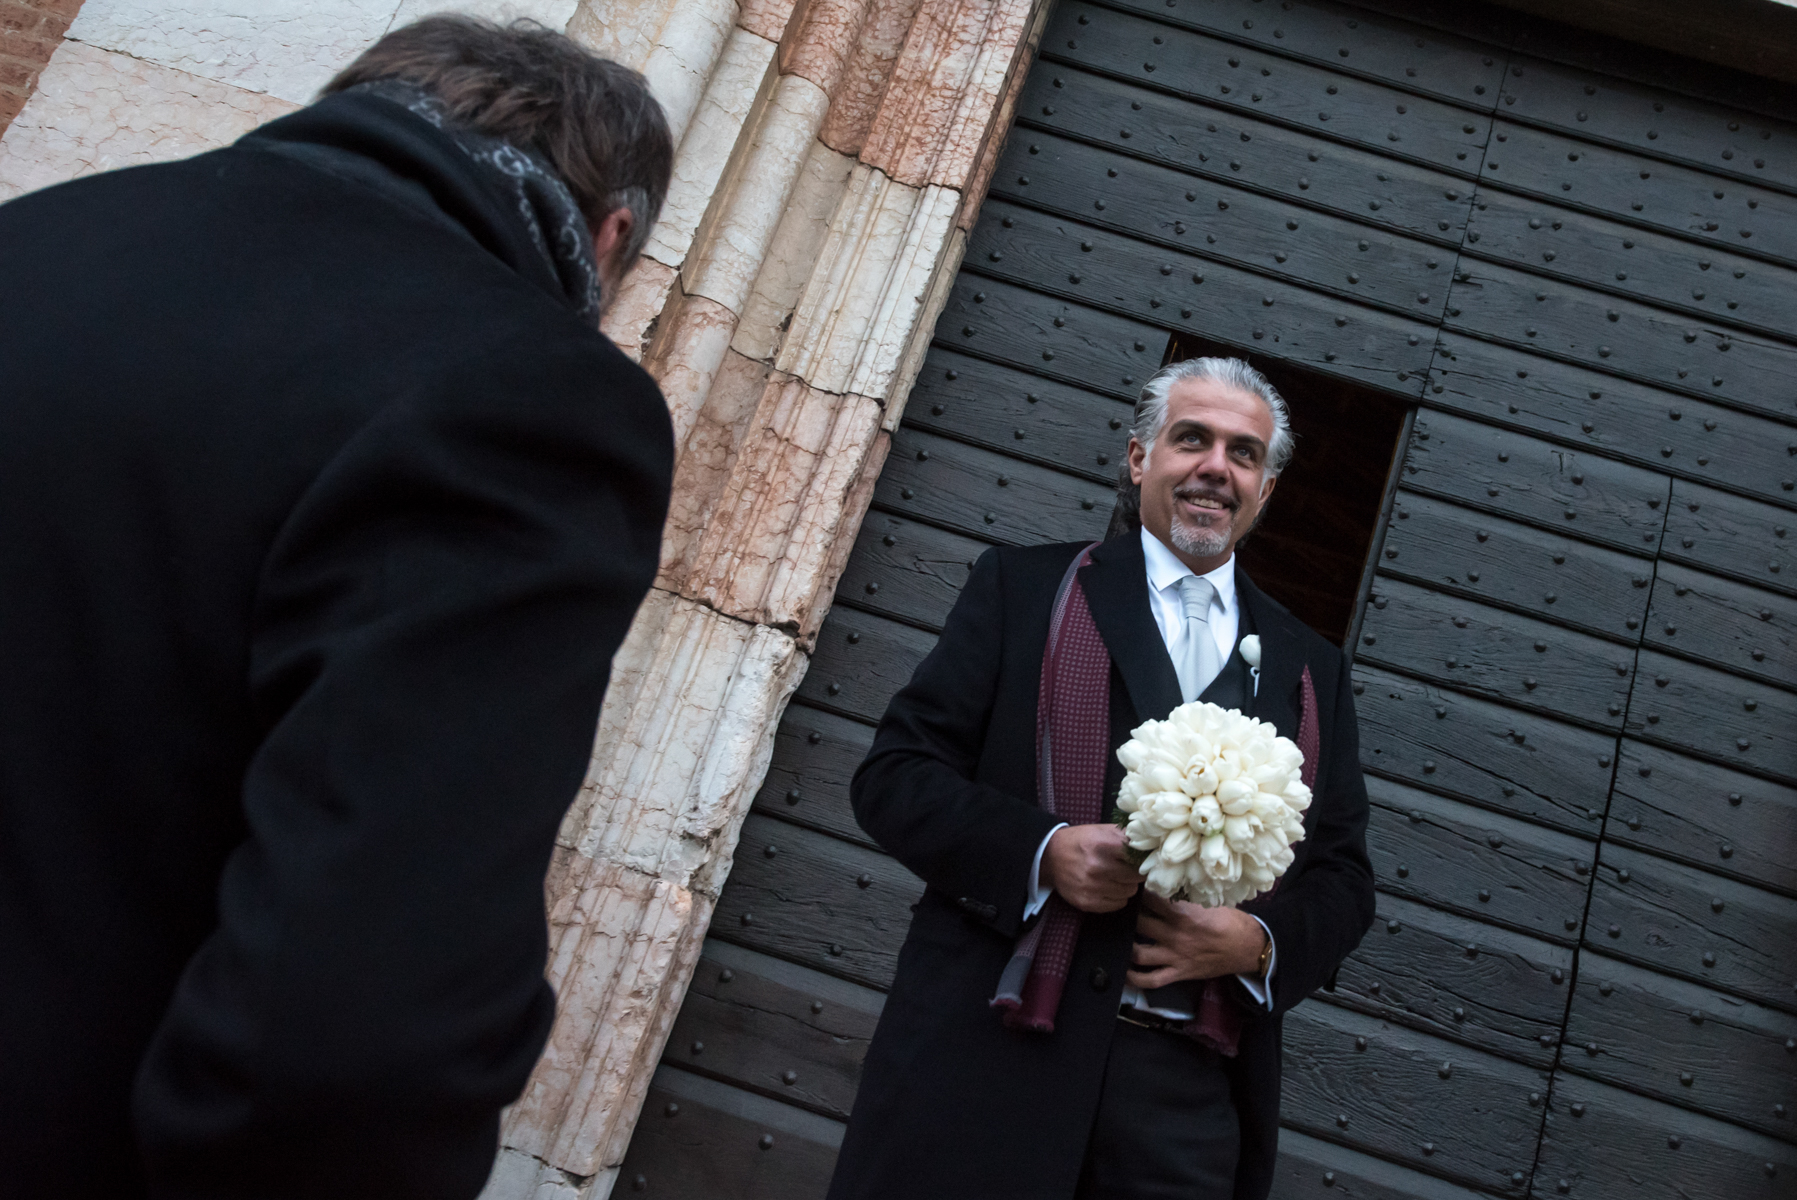 Church of Santa Maria, Gradaro, Mantua, Italy Elopement Photographer | The groom is the first at the church